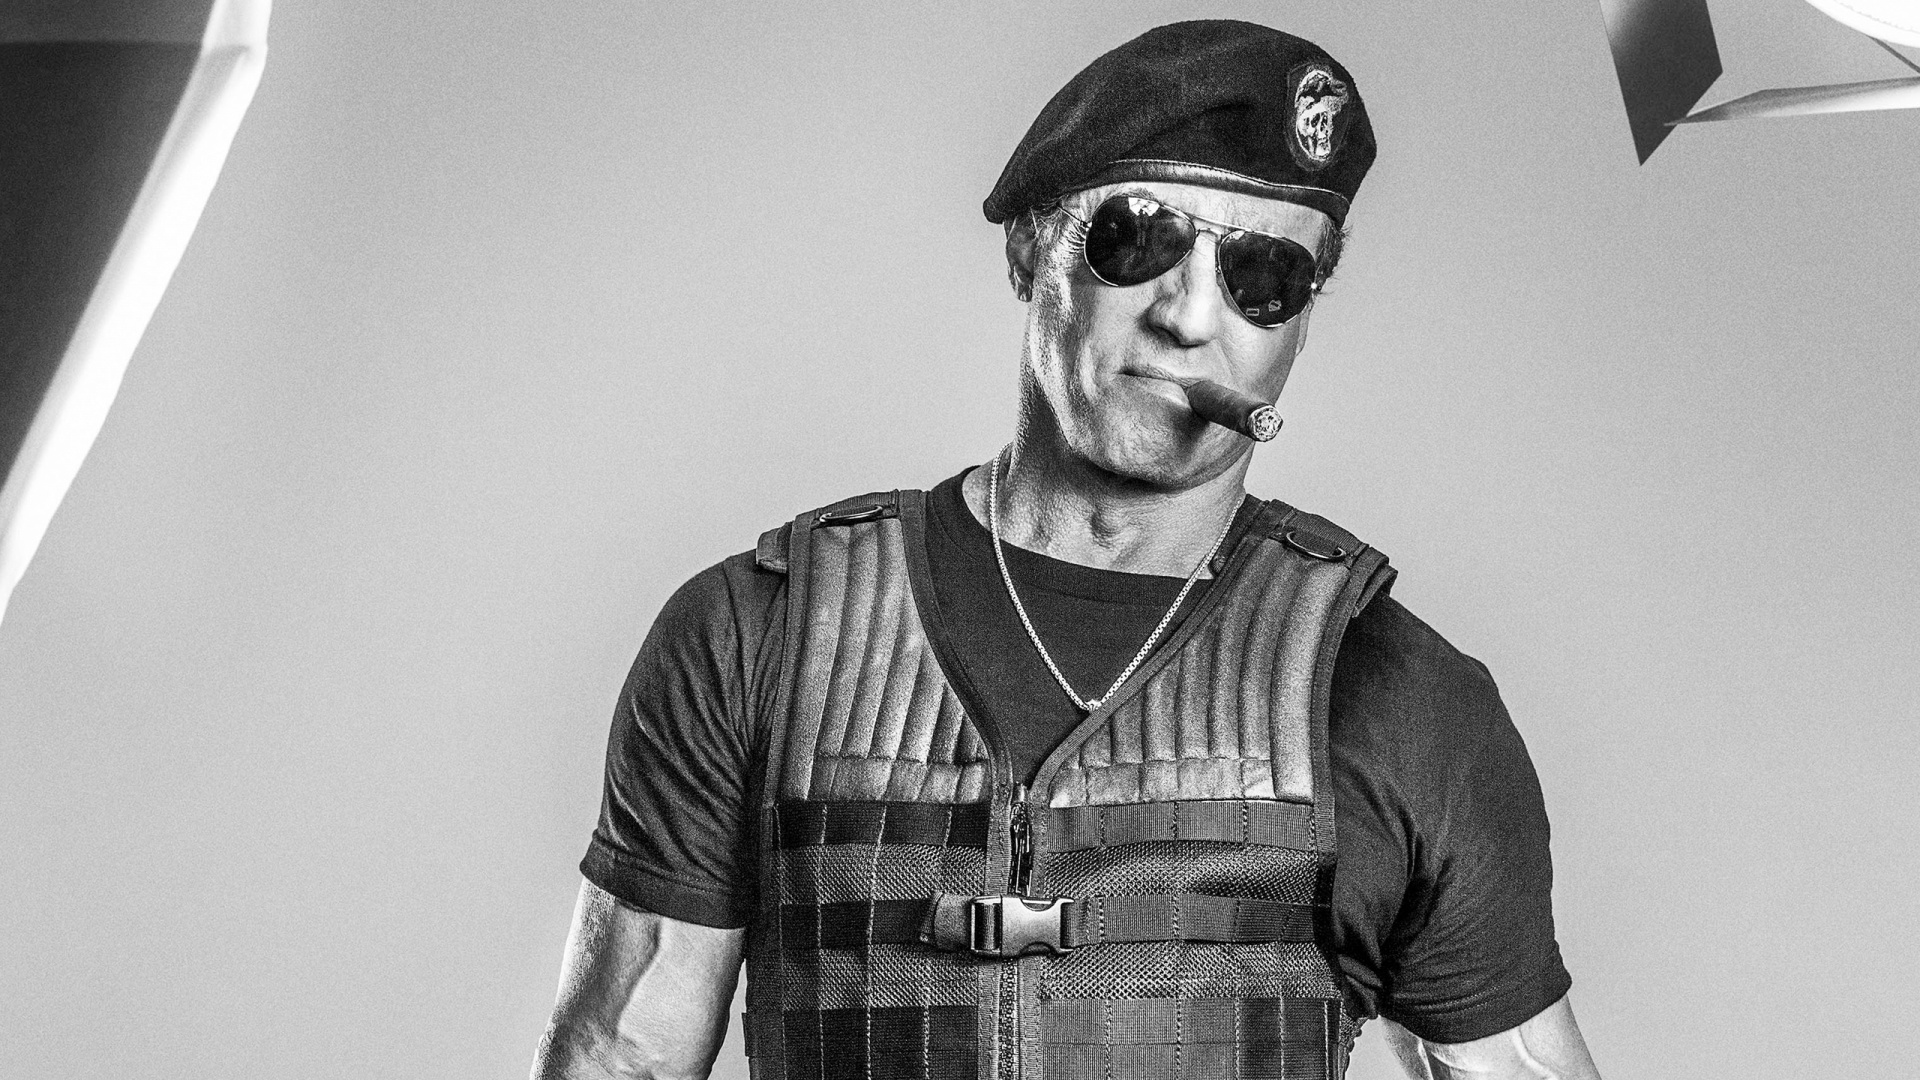 Sylvester Stallone In Expendables 2 Wallpapers: Sylvester Stallone Out Of The Expendables 4 Over Reported